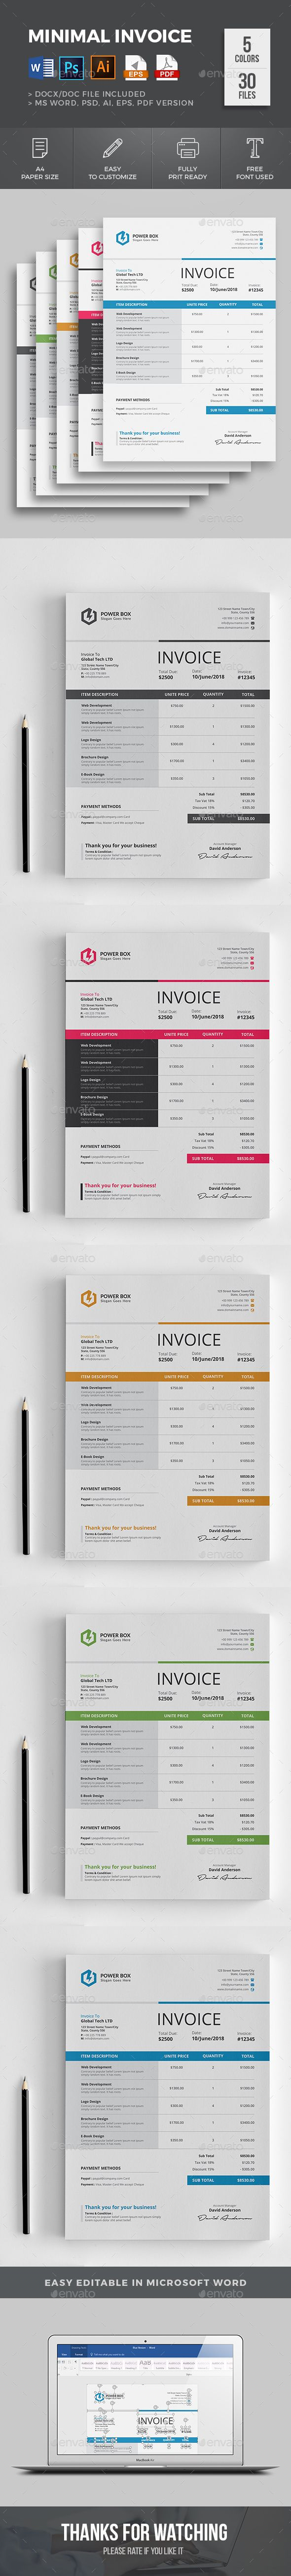 Best 75+ Invoice Templates images on Pinterest | Invoice design